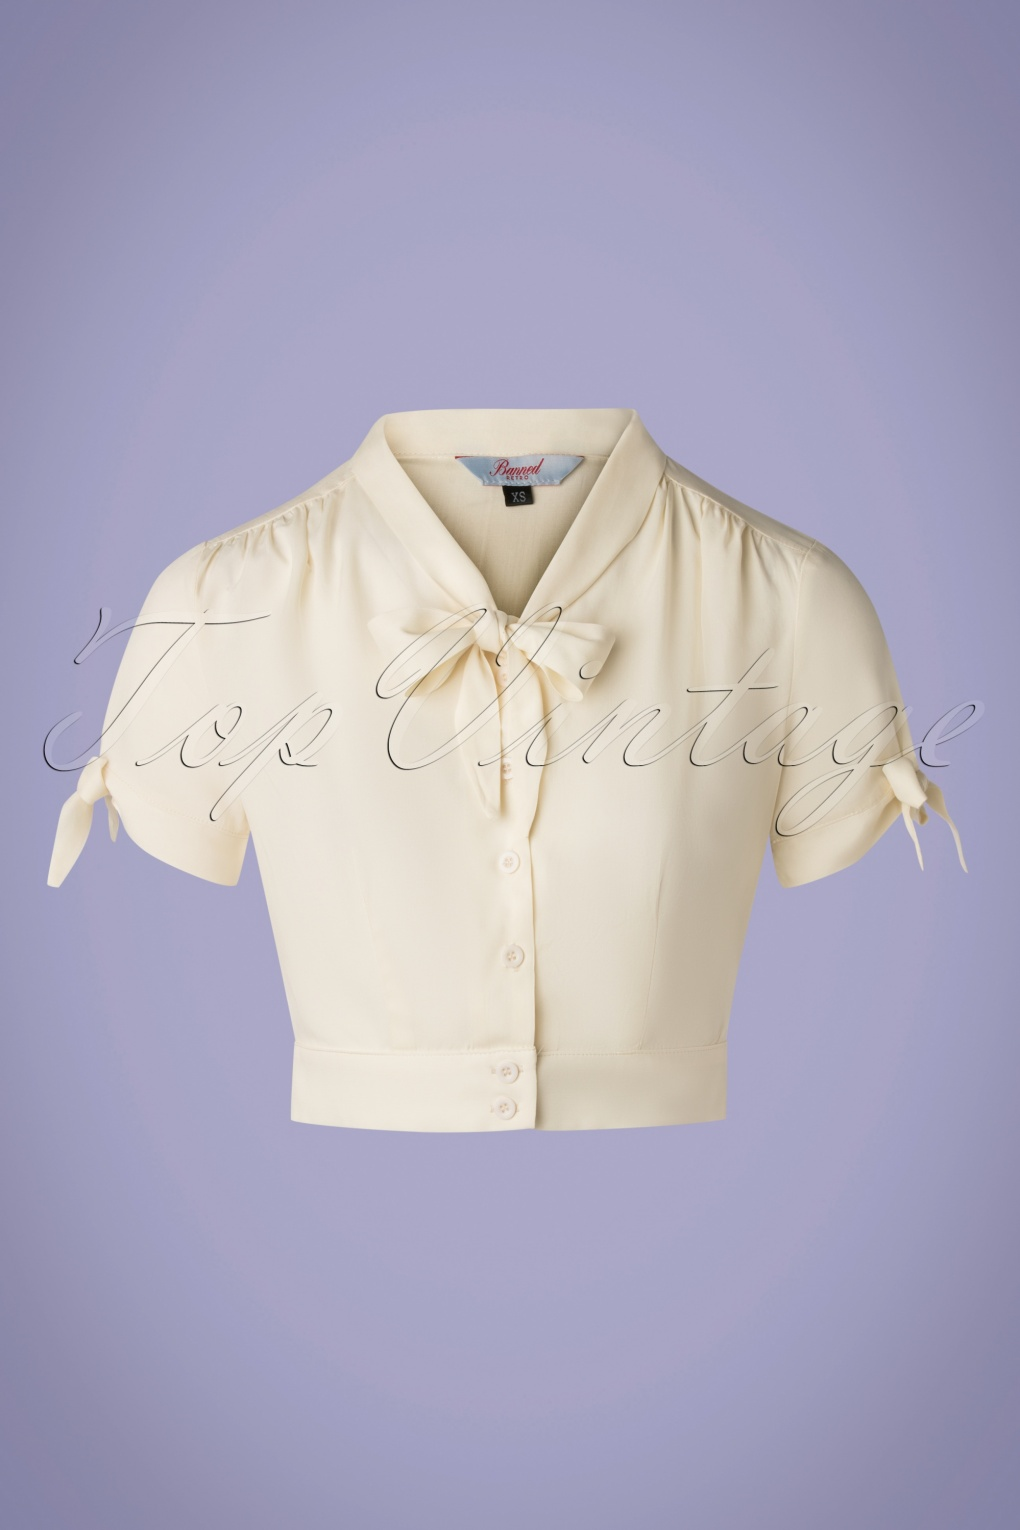 Vintage Tops & Retro Shirts, Halter Tops, Blouses 50s Pussy Crop Top in Cream £27.15 AT vintagedancer.com